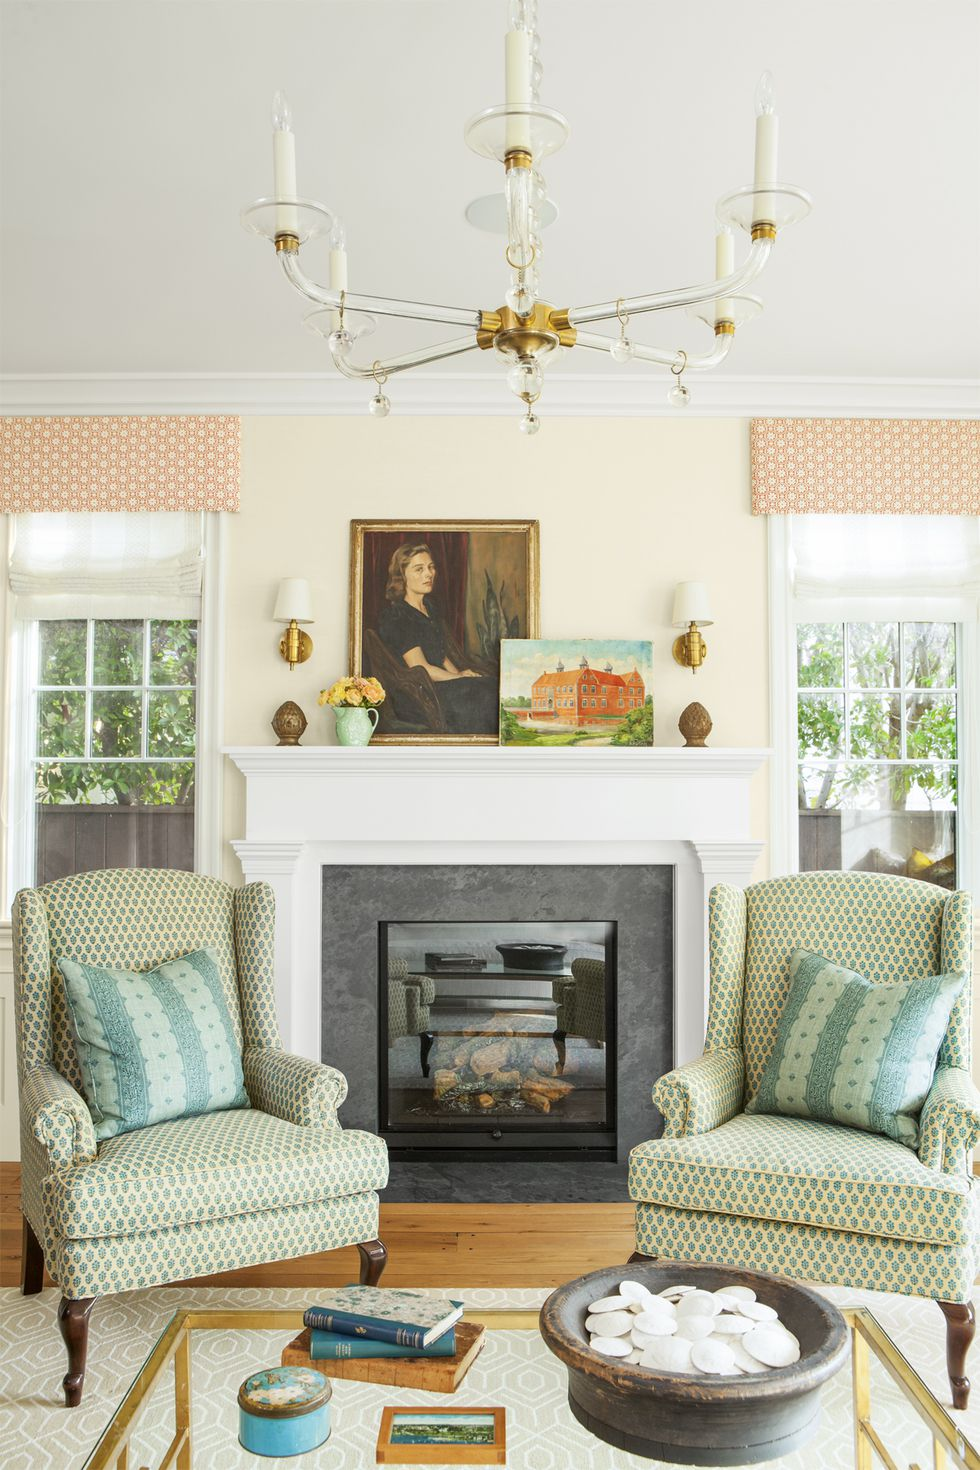 in-with-the-bold-fireplace-0417.jpg